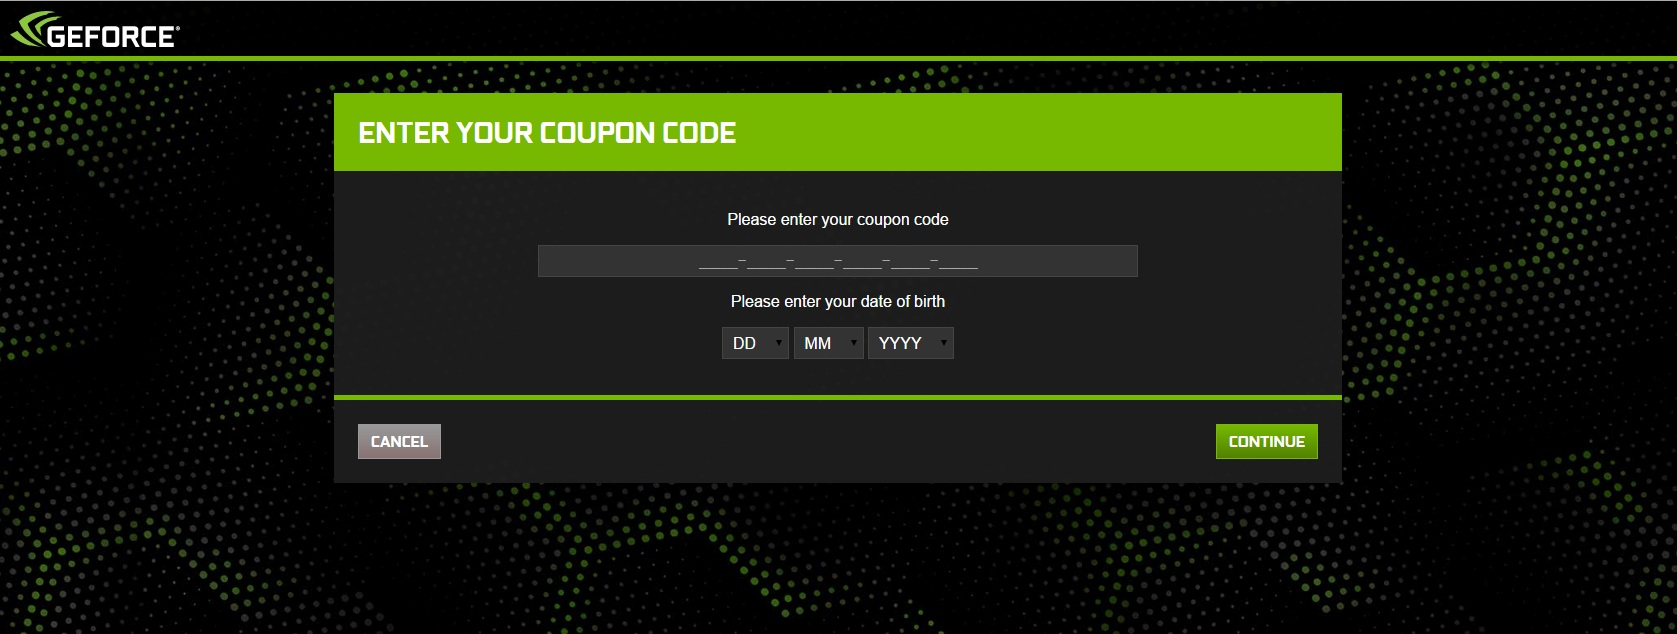 Redemption Instructions Geforce